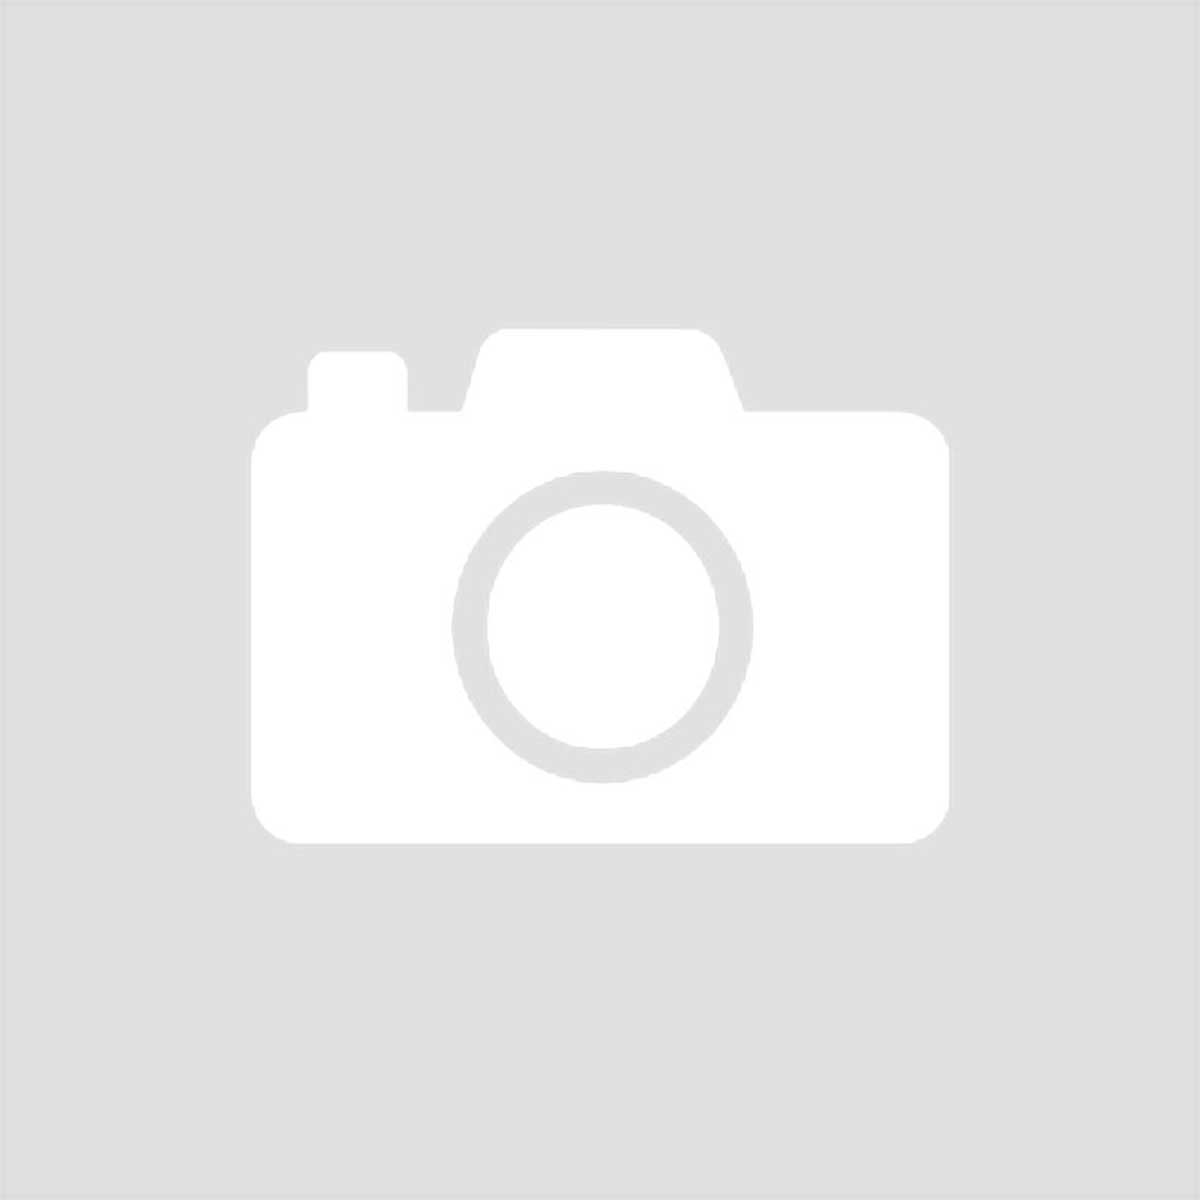 Where to buy Liberon Wood Dye